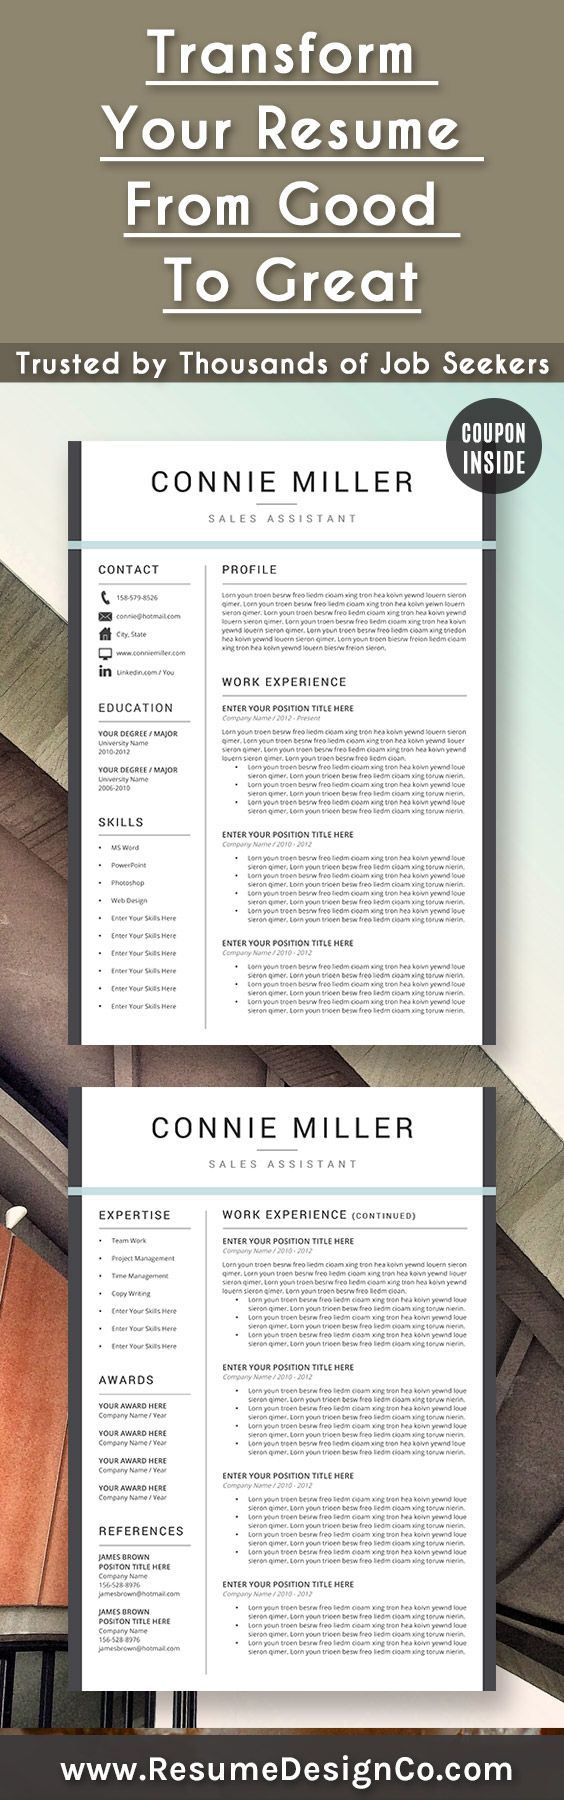 Good Words To Use On A Resume 169 Best Work Images On Pinterest  Career Personal Development And .